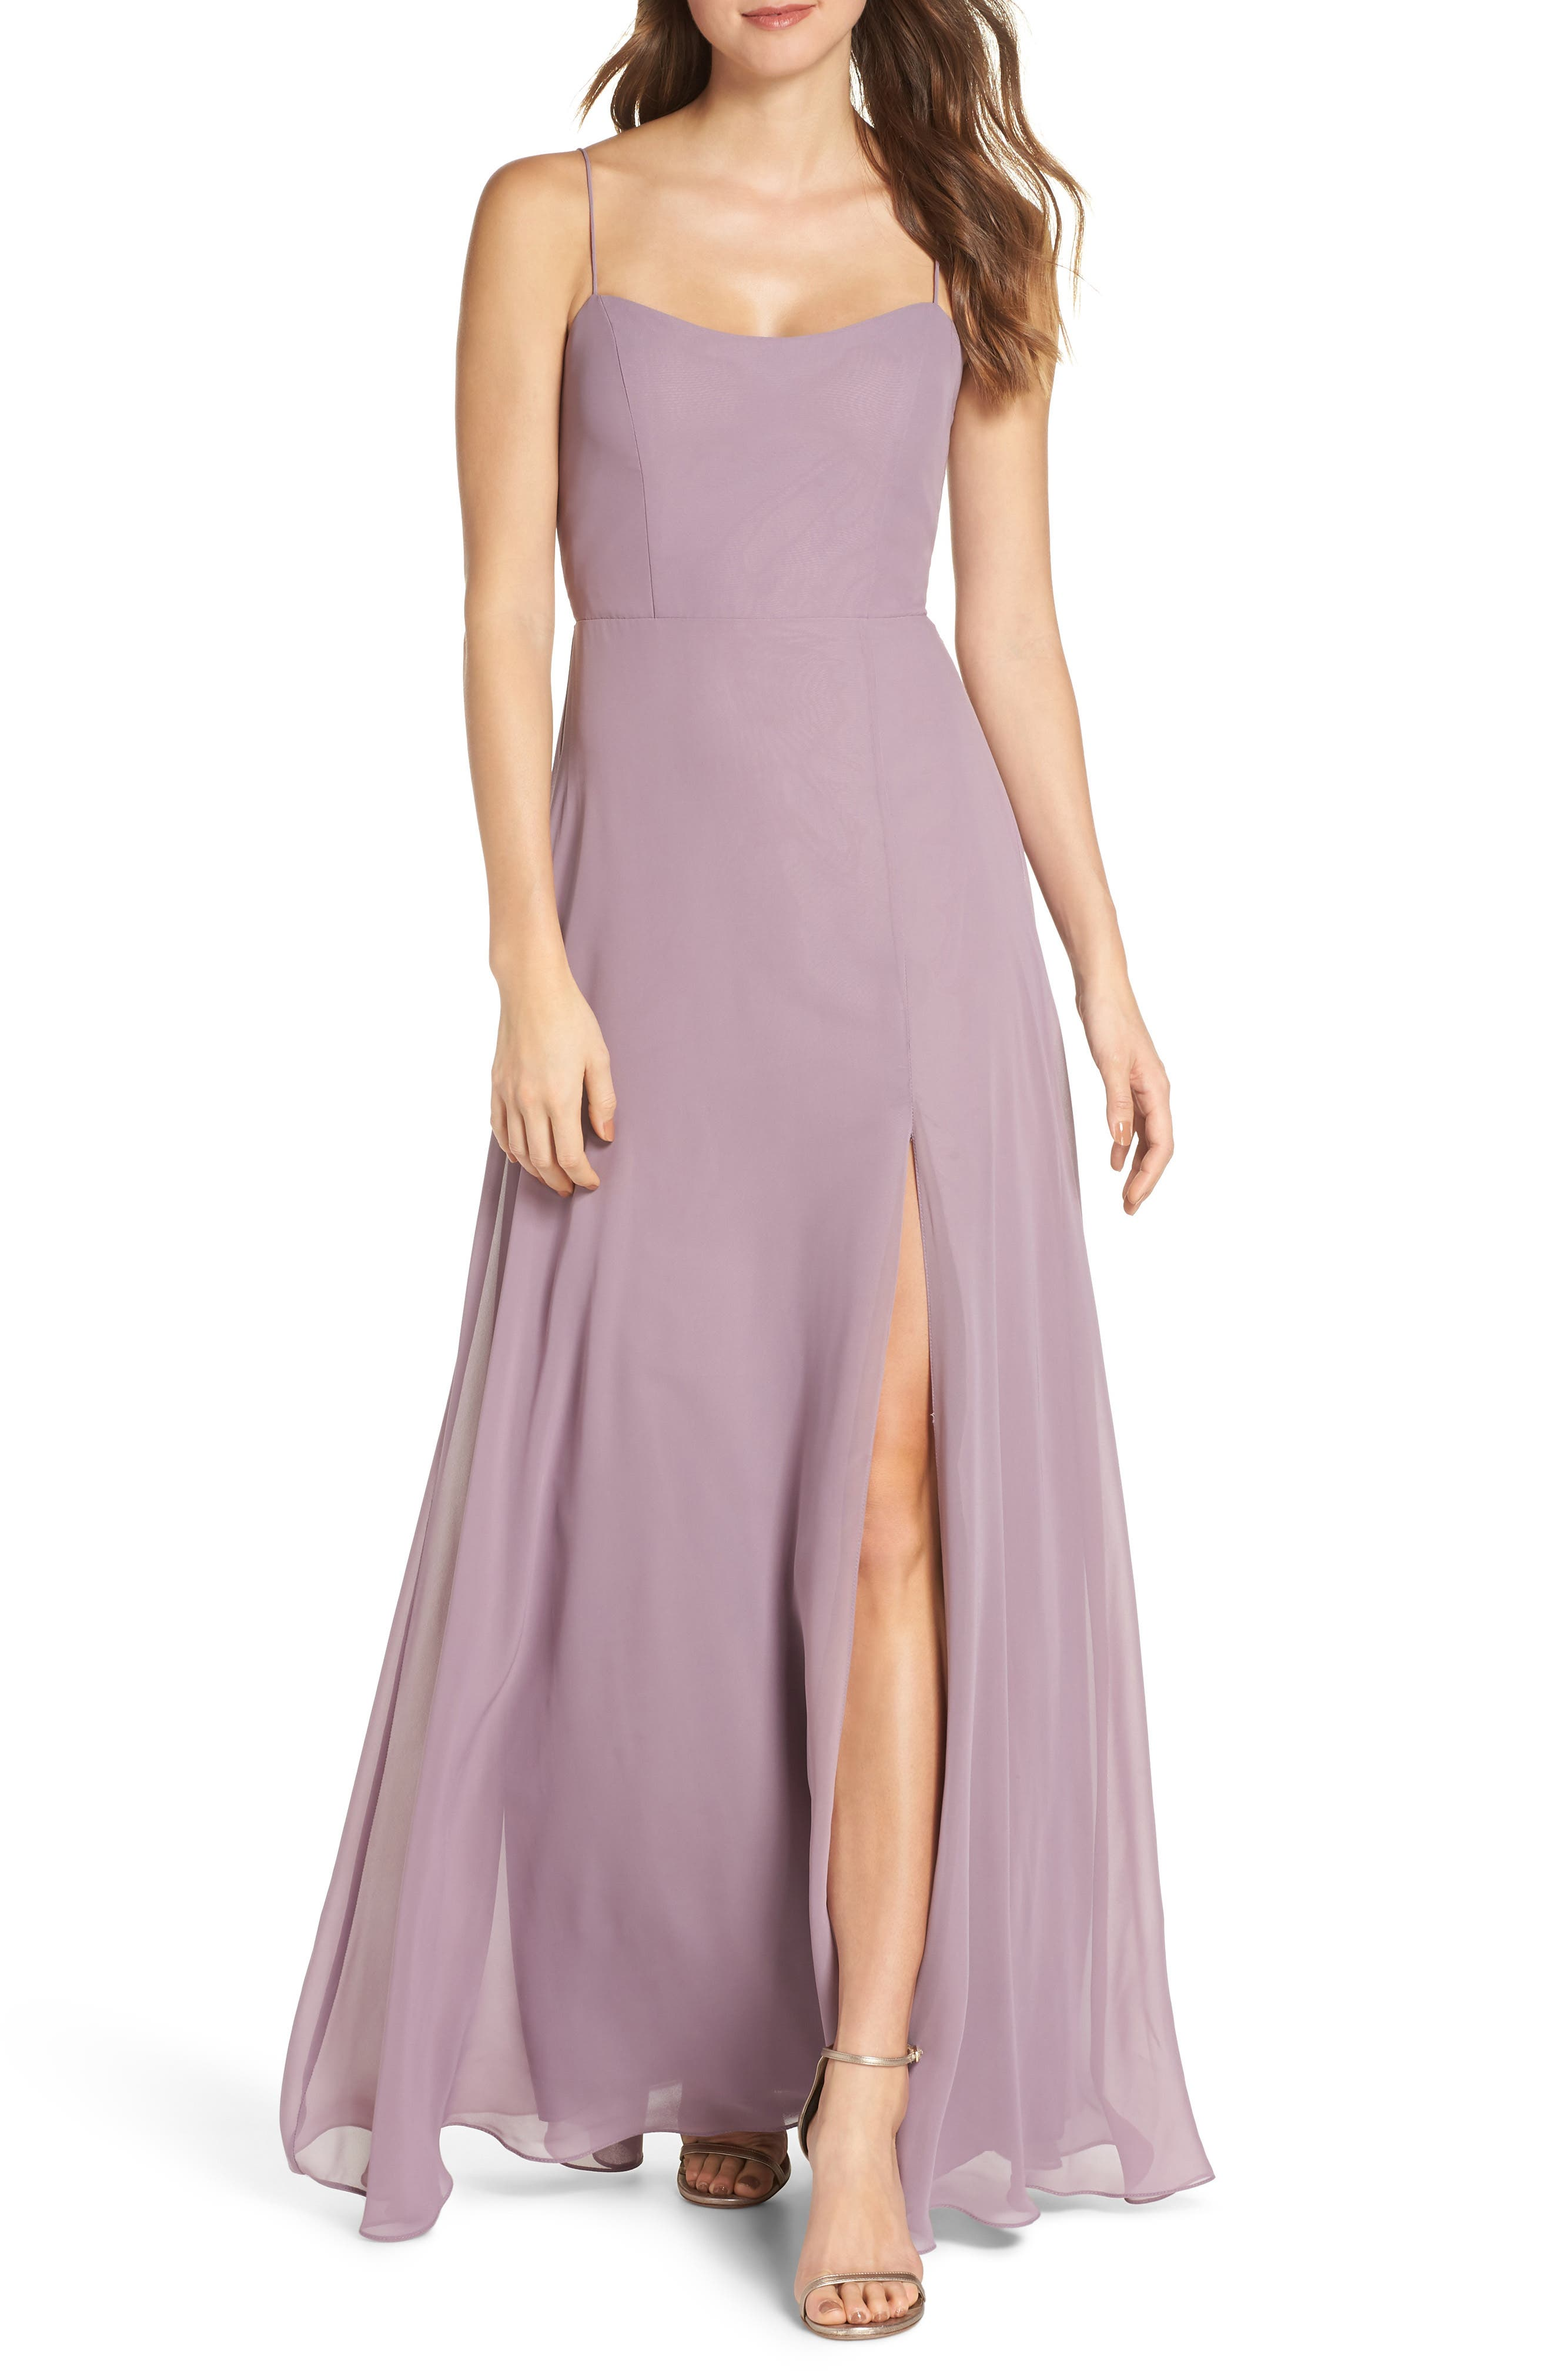 Jenny Yoo Kiara Bow Back Chiffon Evening Dress, Purple